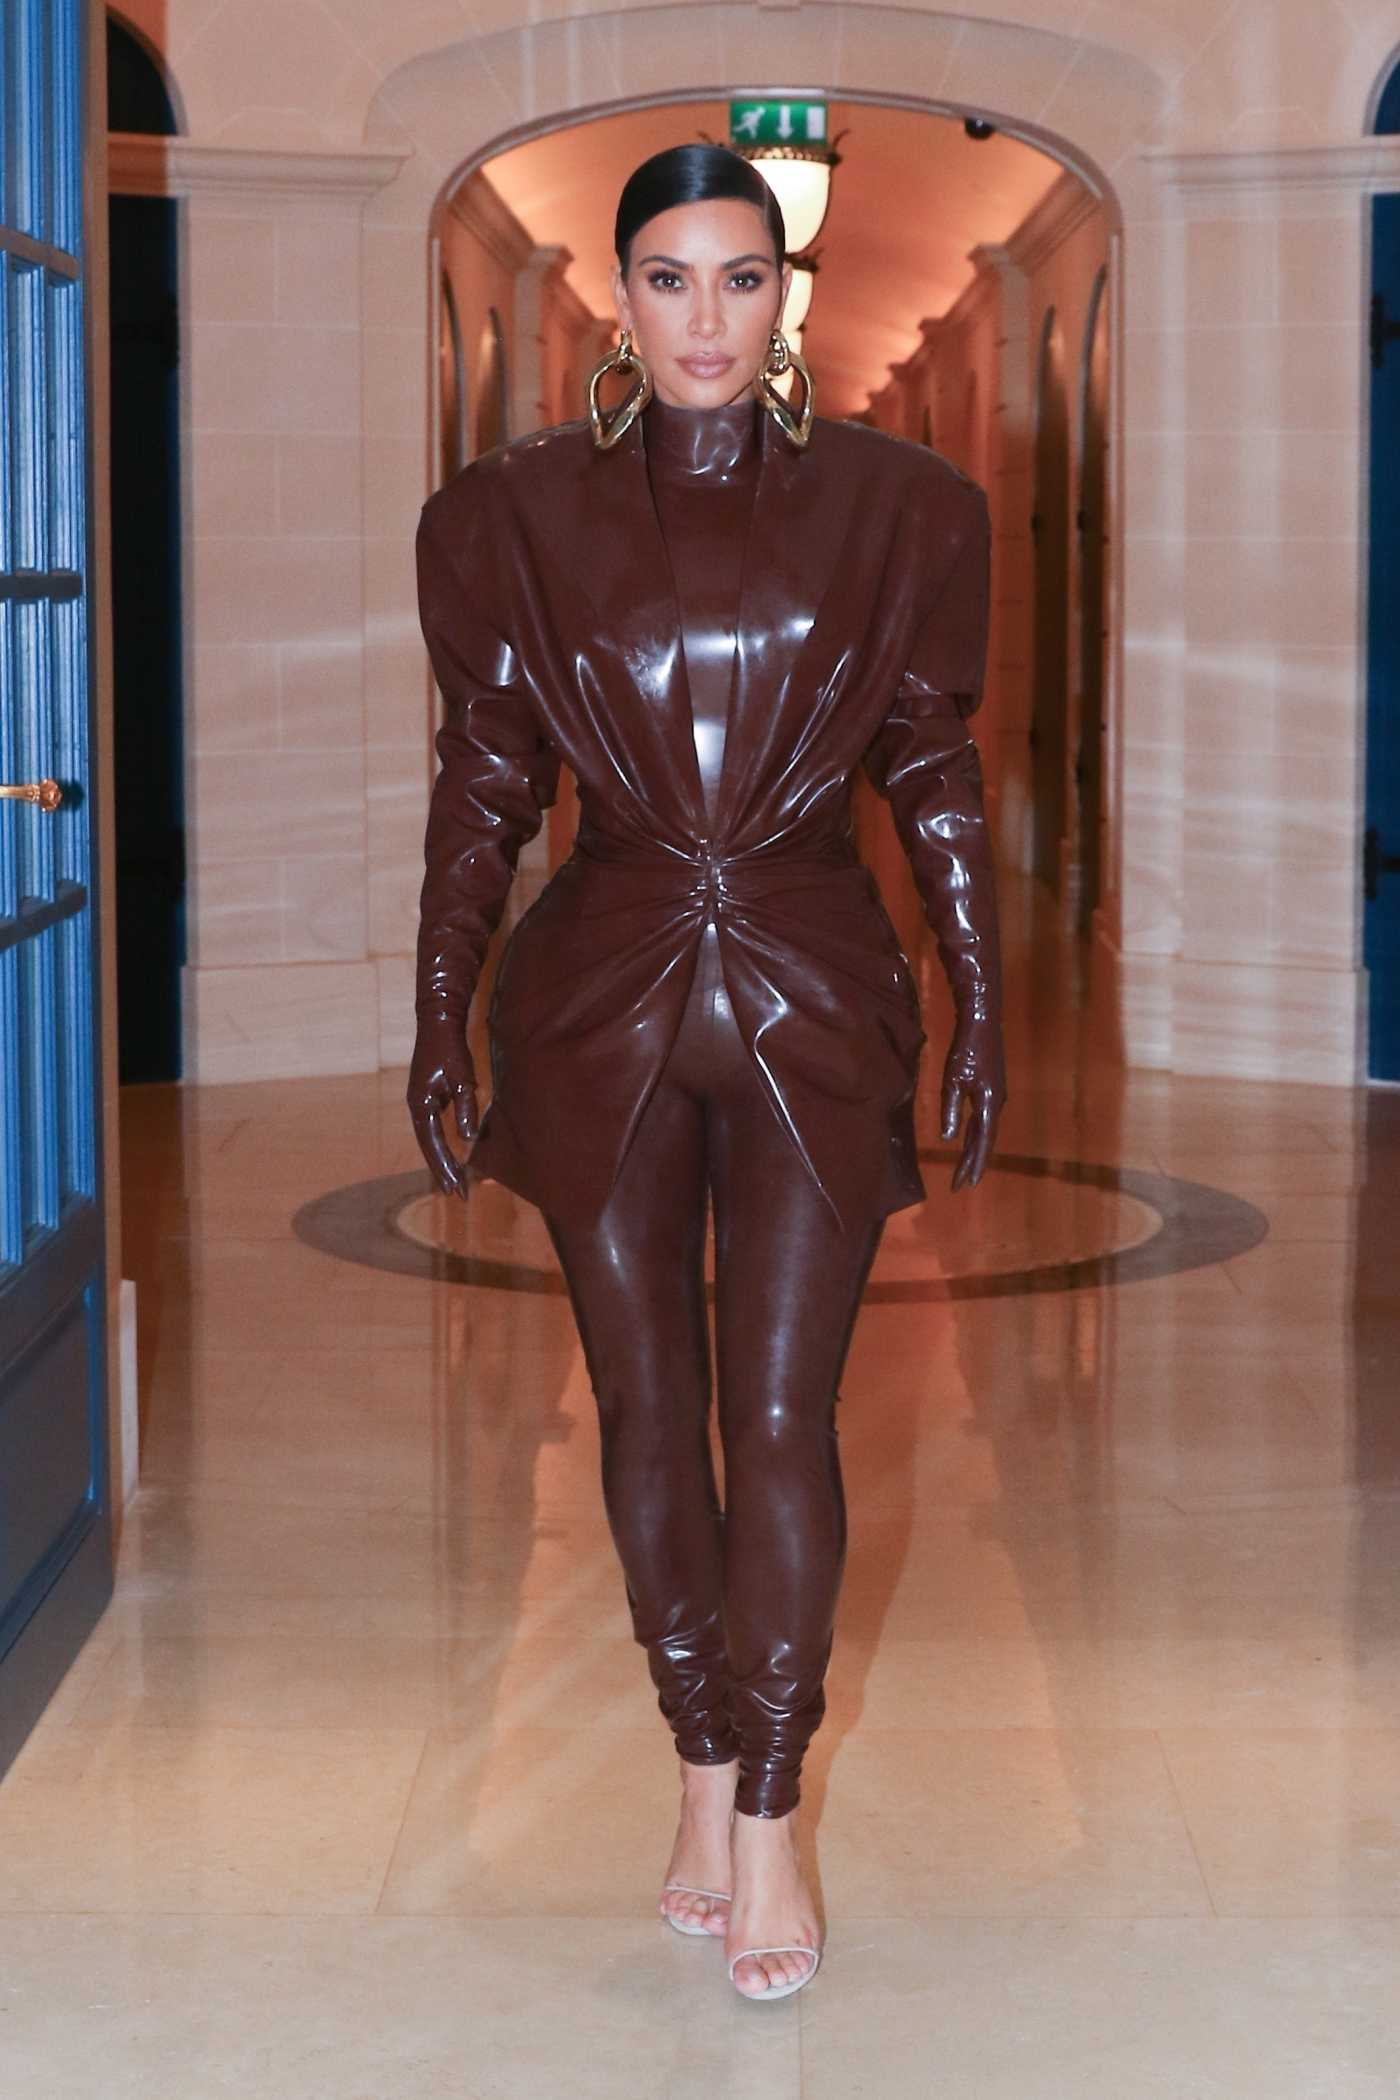 Kim Kardashian in a Brown Latex Outfit Leaves Her Hotel in Paris 03/01/2020